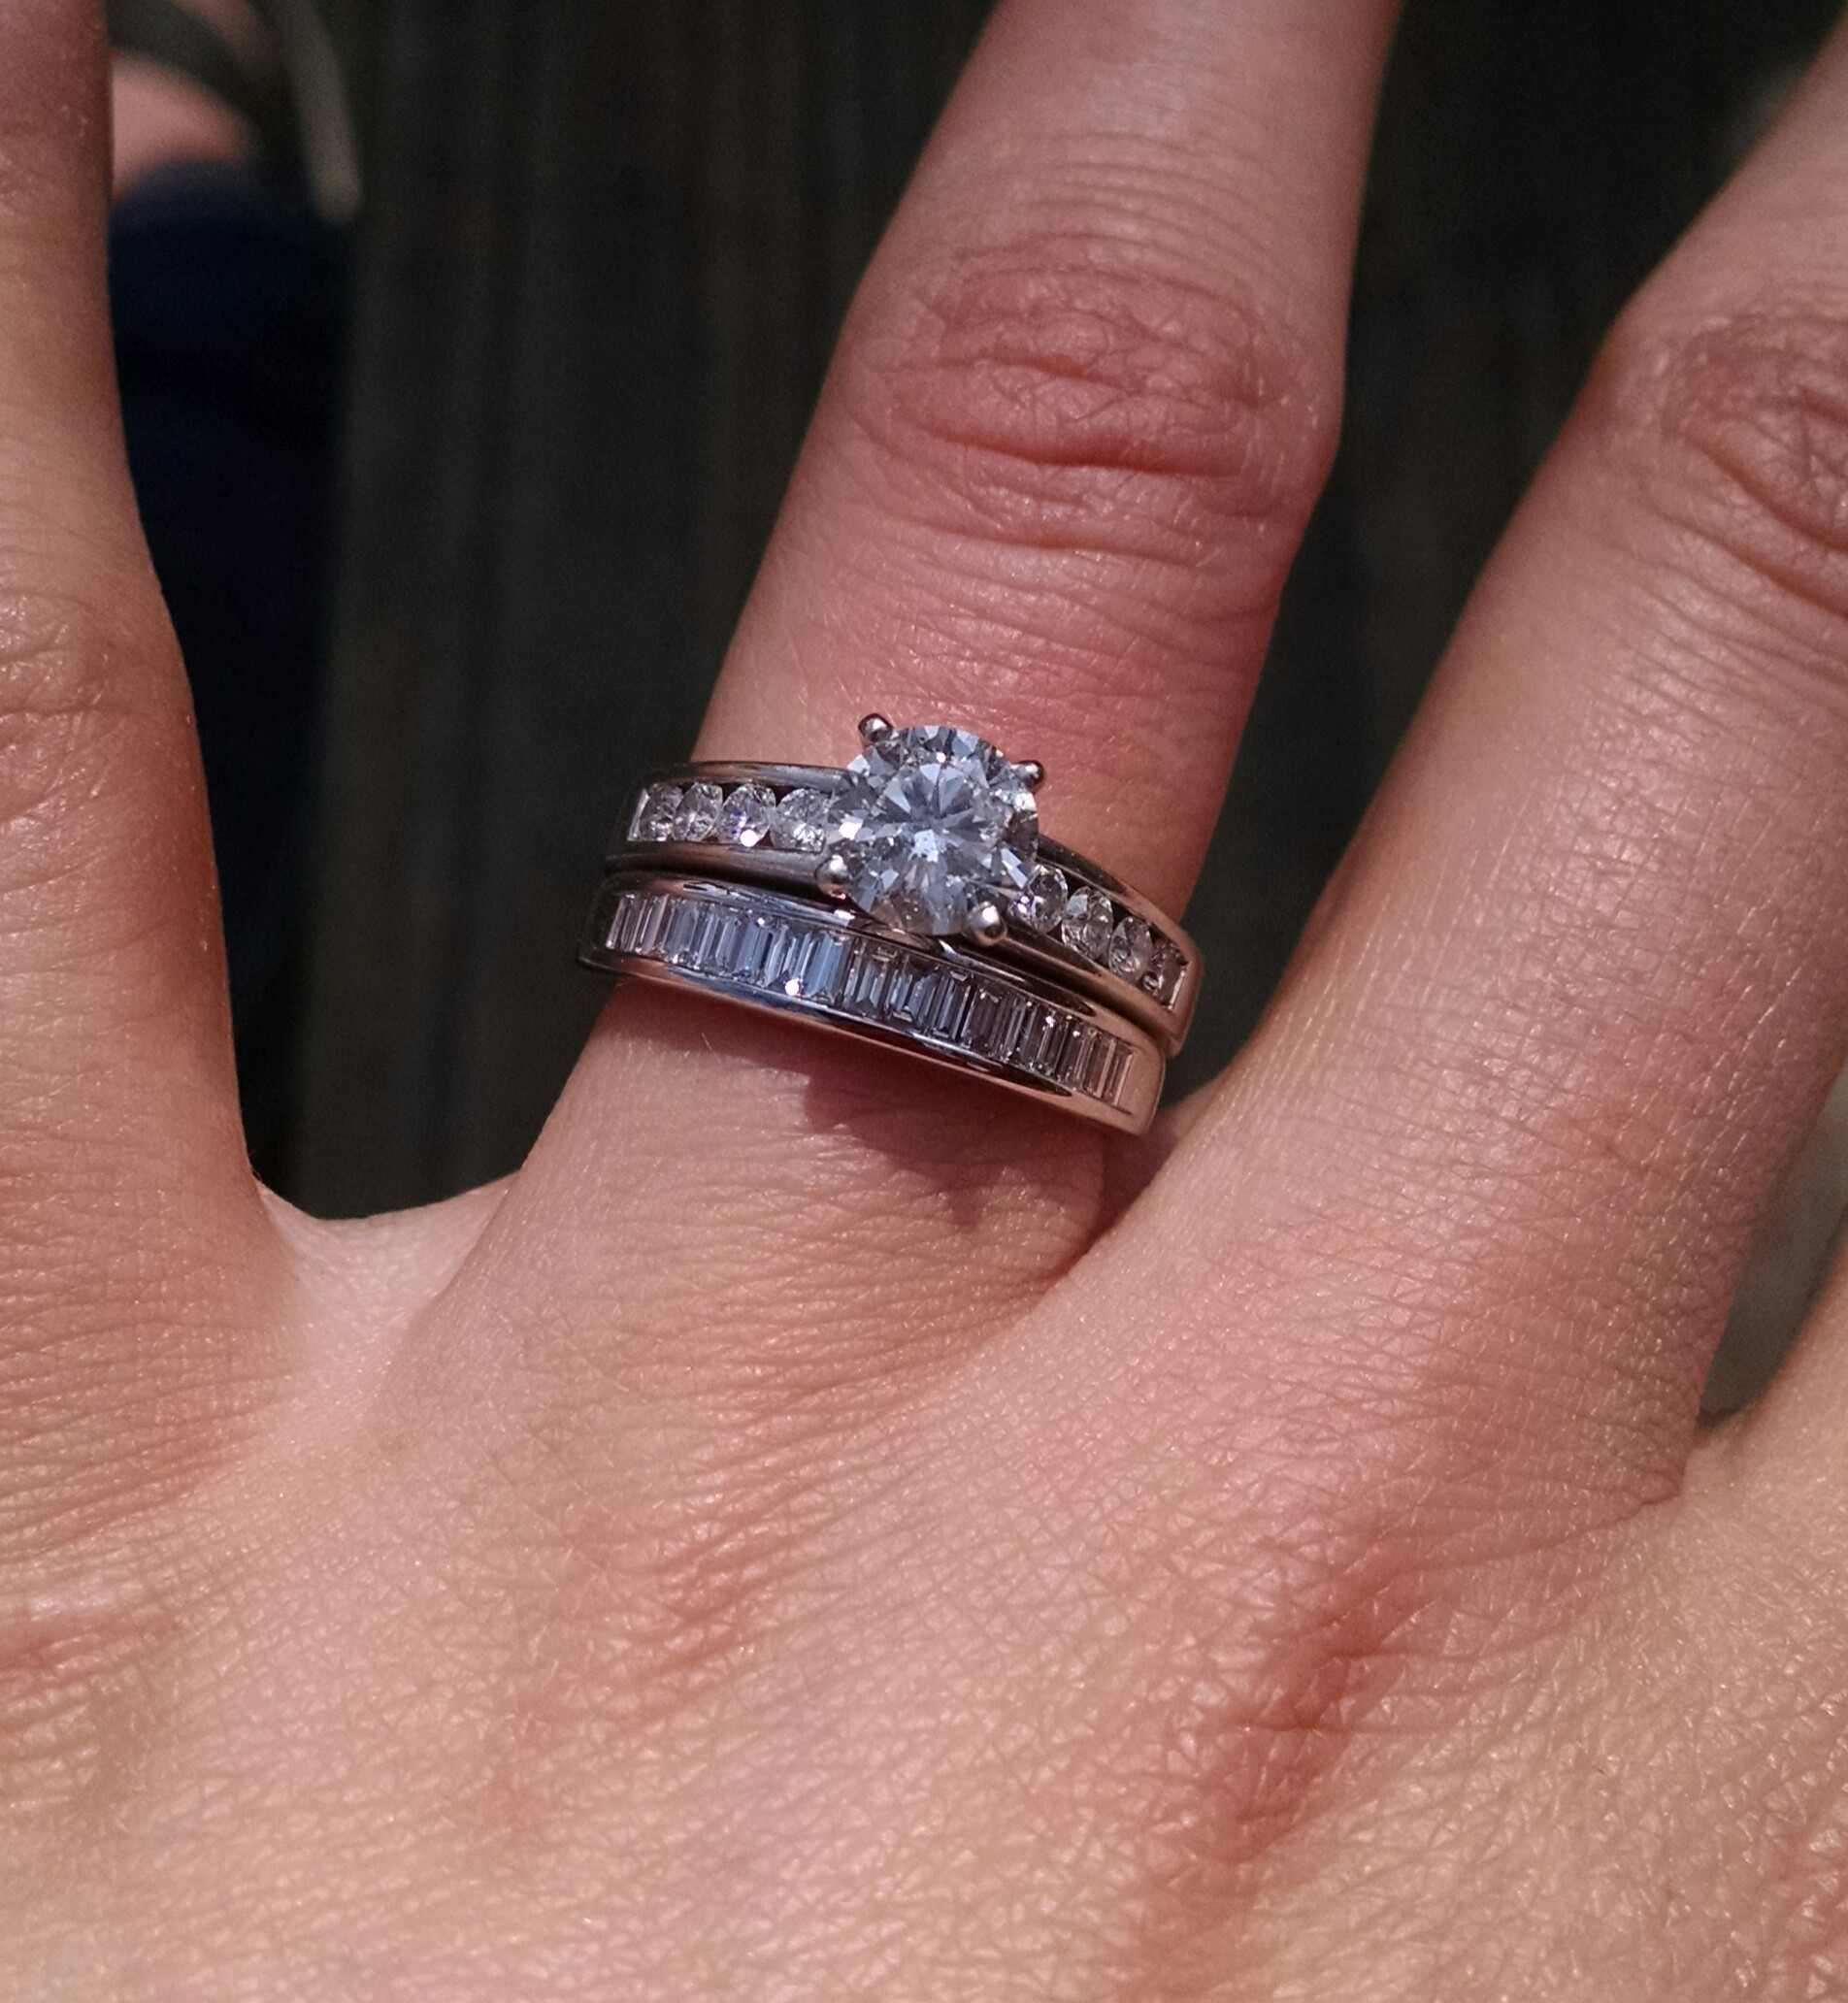 Got my wedding band- Excited & wanted to share! Channel baguettes